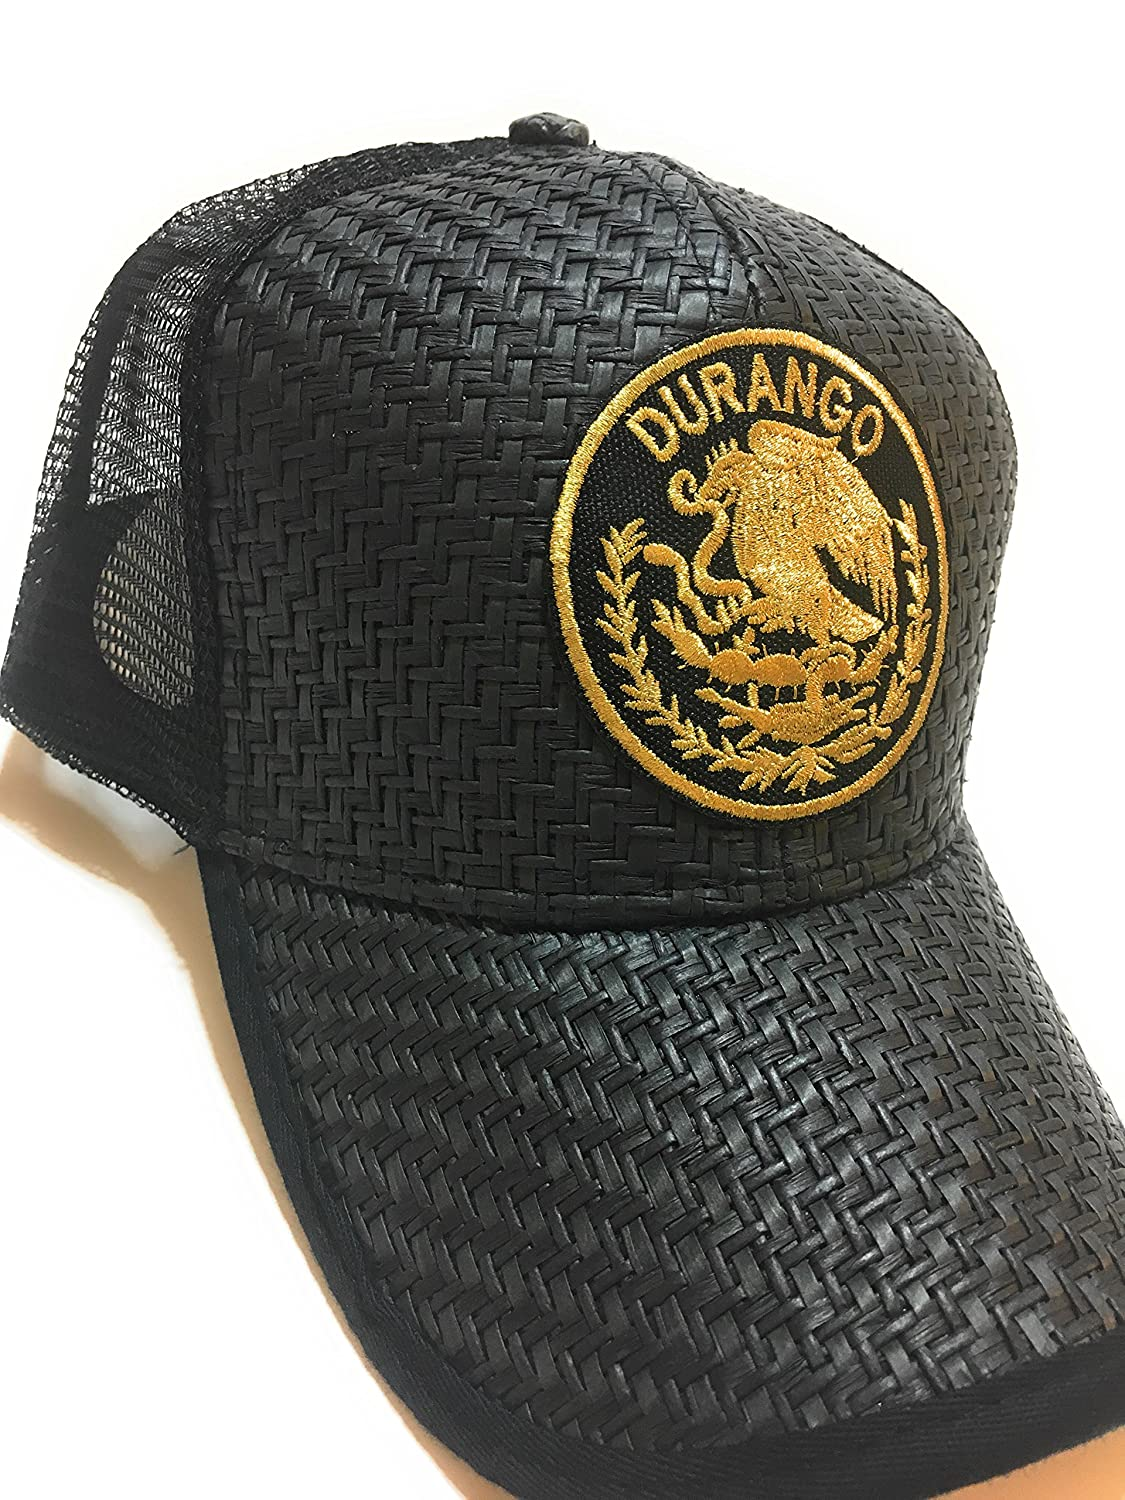 Amazon.com : GORRA FEDERAL DURANGO. GORRA VAQUERA. HAT. CAP. : Sports & Outdoors